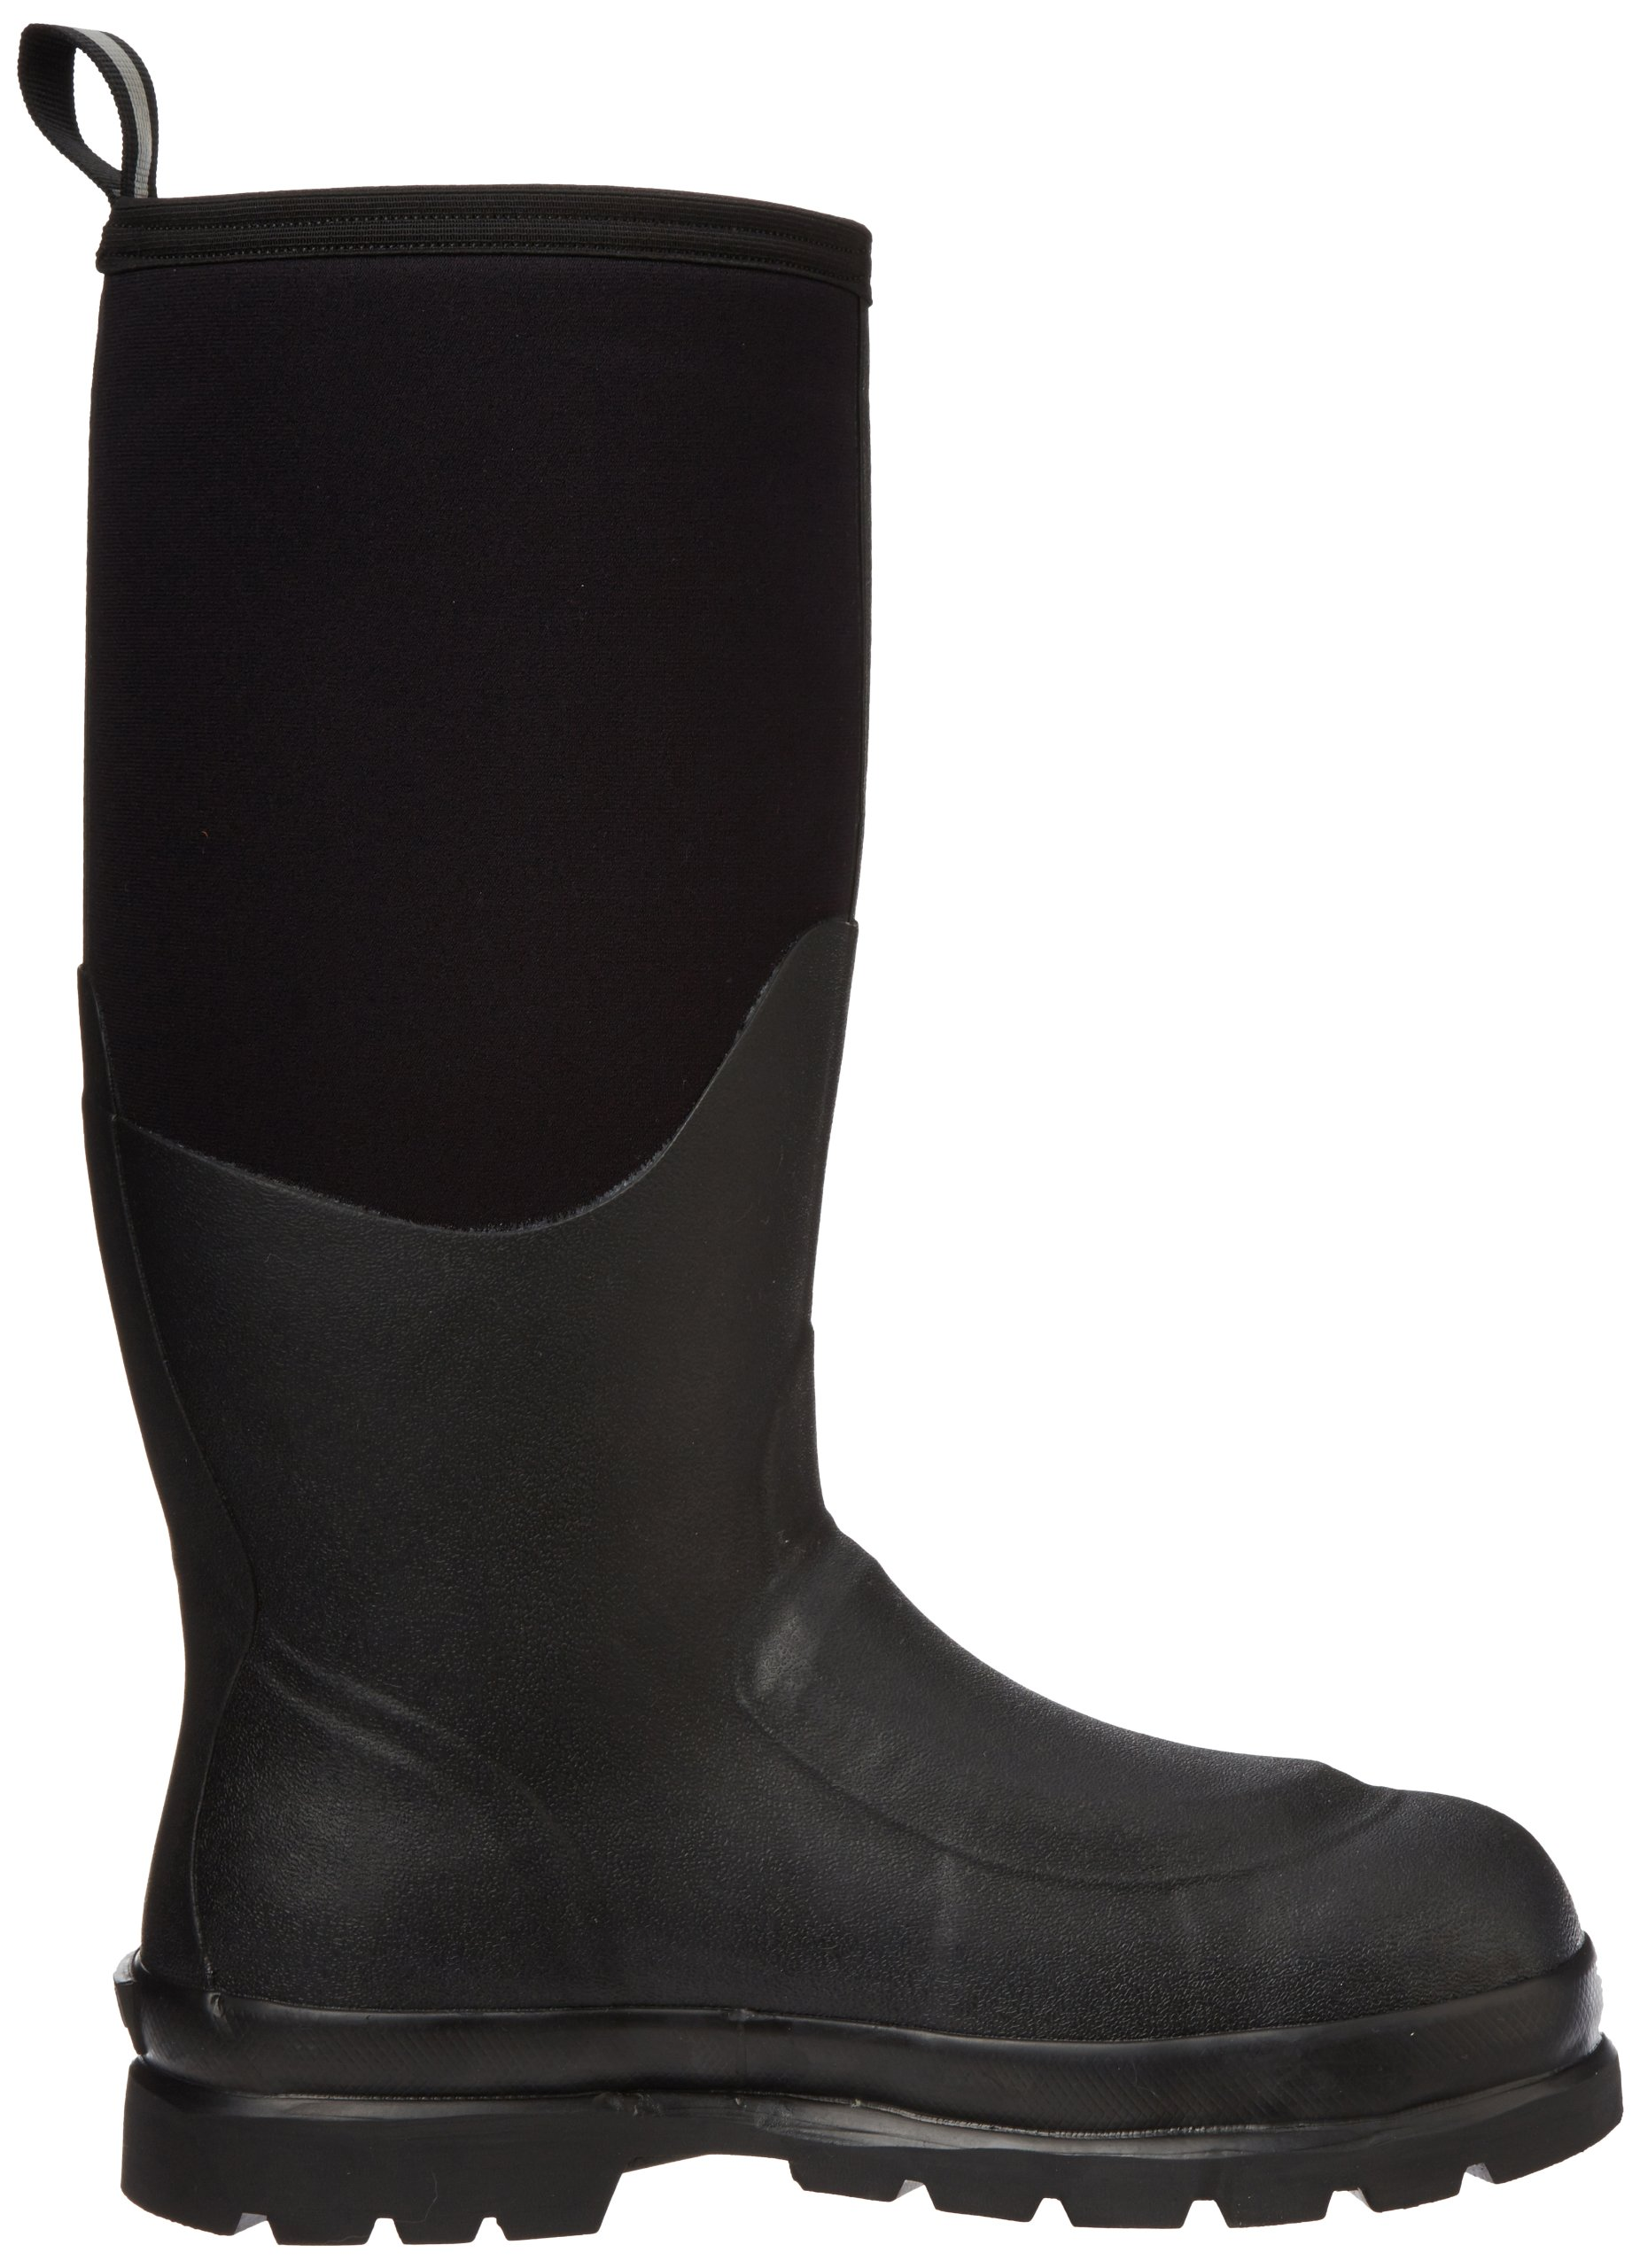 MuckBoots Men's Chore Safety Toe Metatarsal Work Boot,Black,10 M US by Muck Boot (Image #6)